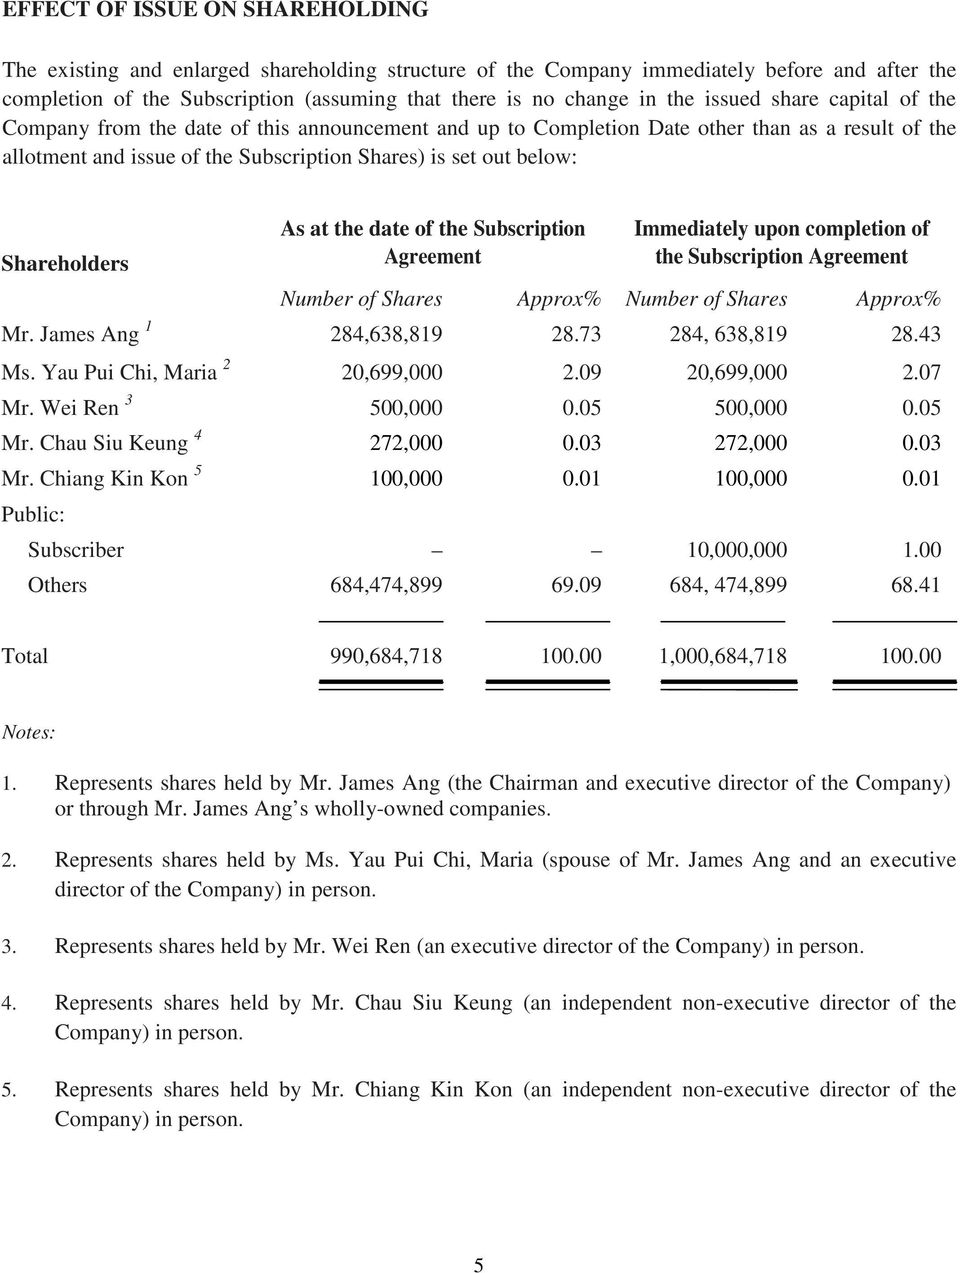 Shareholders As at the date of the Subscription Agreement Immediately upon completion of the Subscription Agreement Number of Shares Approx% Number of Shares Approx% Mr. James Ang 1 284,638,819 28.